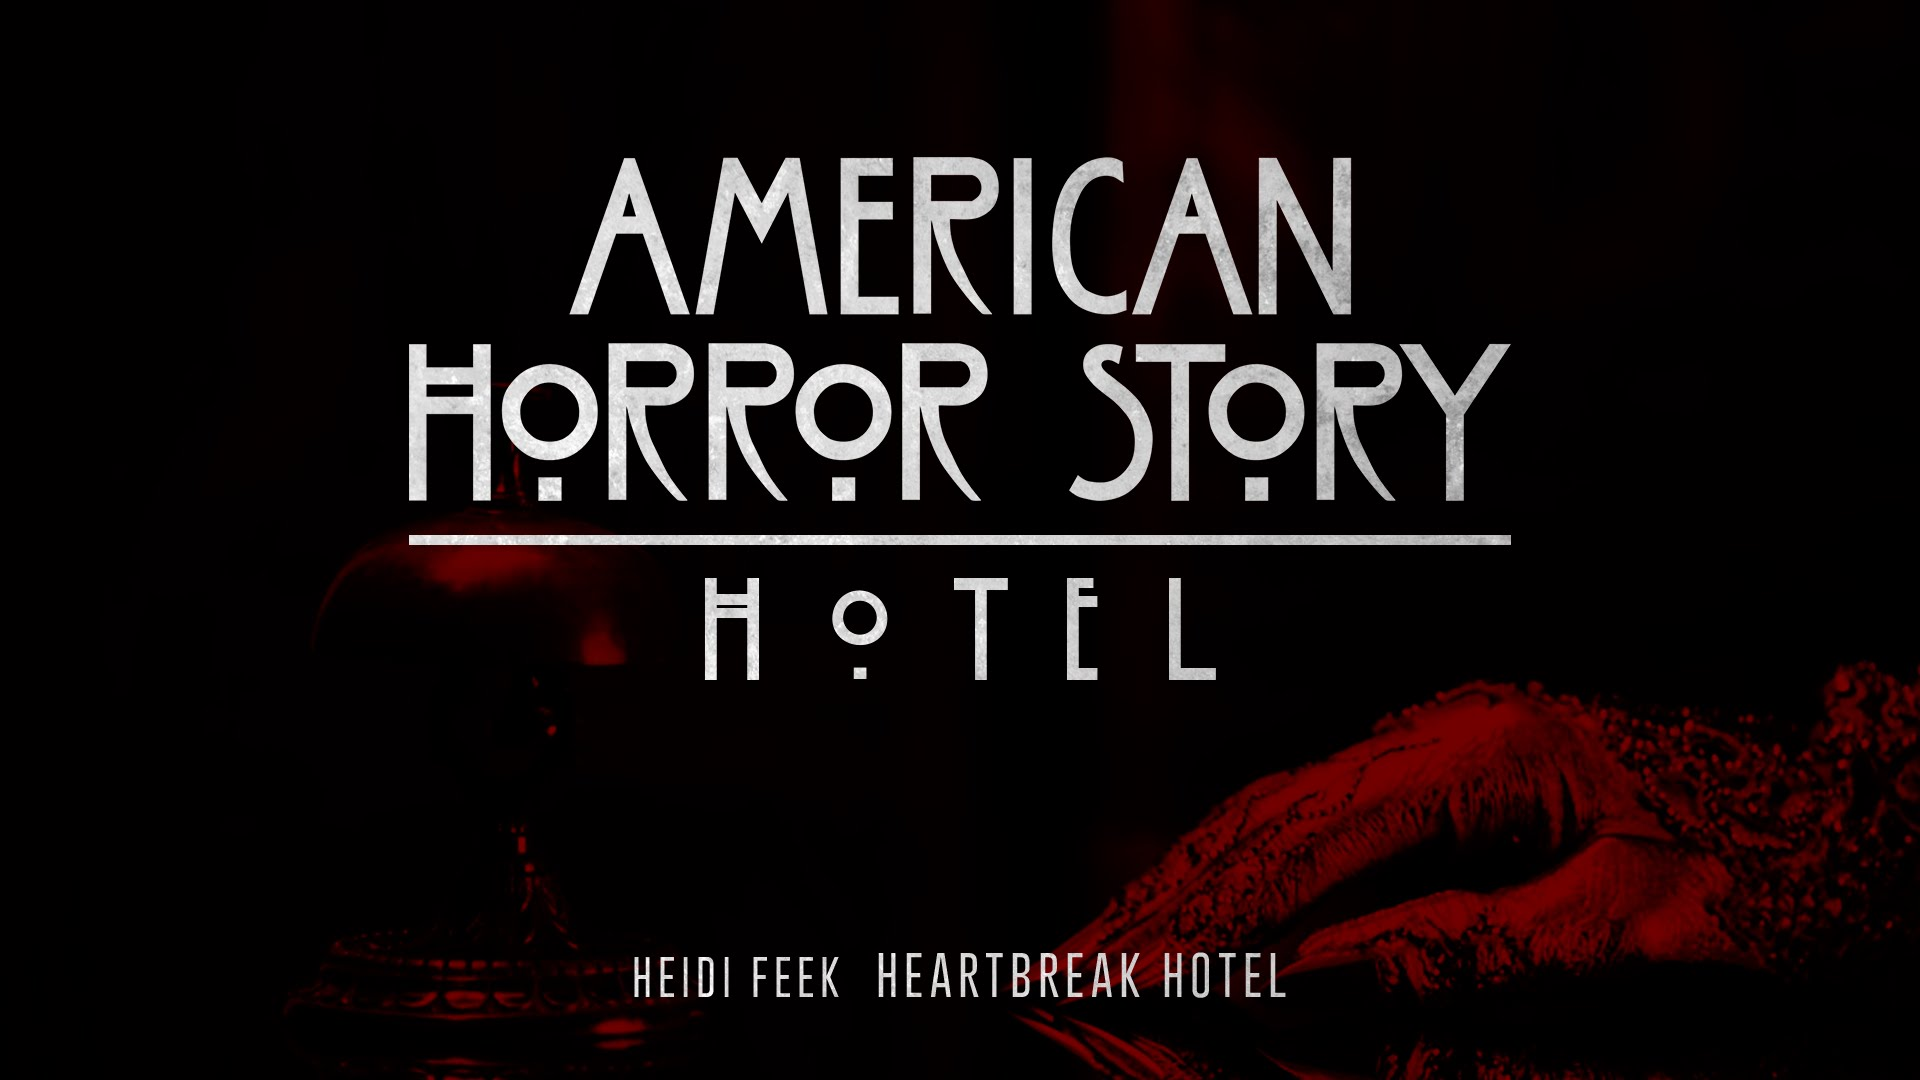 American Horror Story Hotel Wallpapers High Resolution and Quality 1920x1080